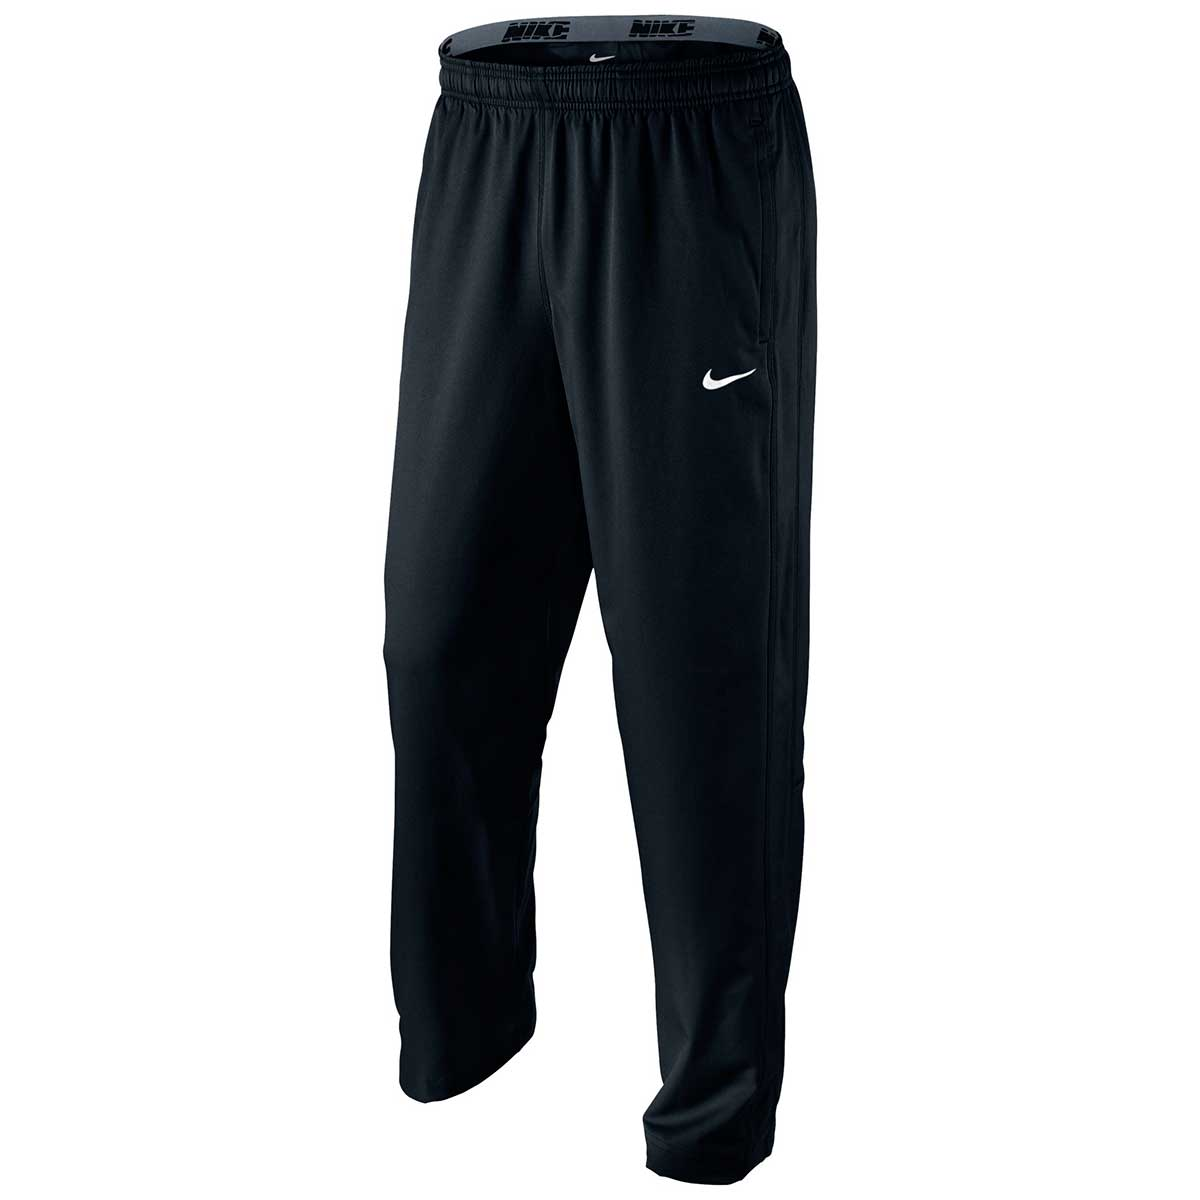 Nike Track Pants For Men Cheap | Provincial Archives of ...